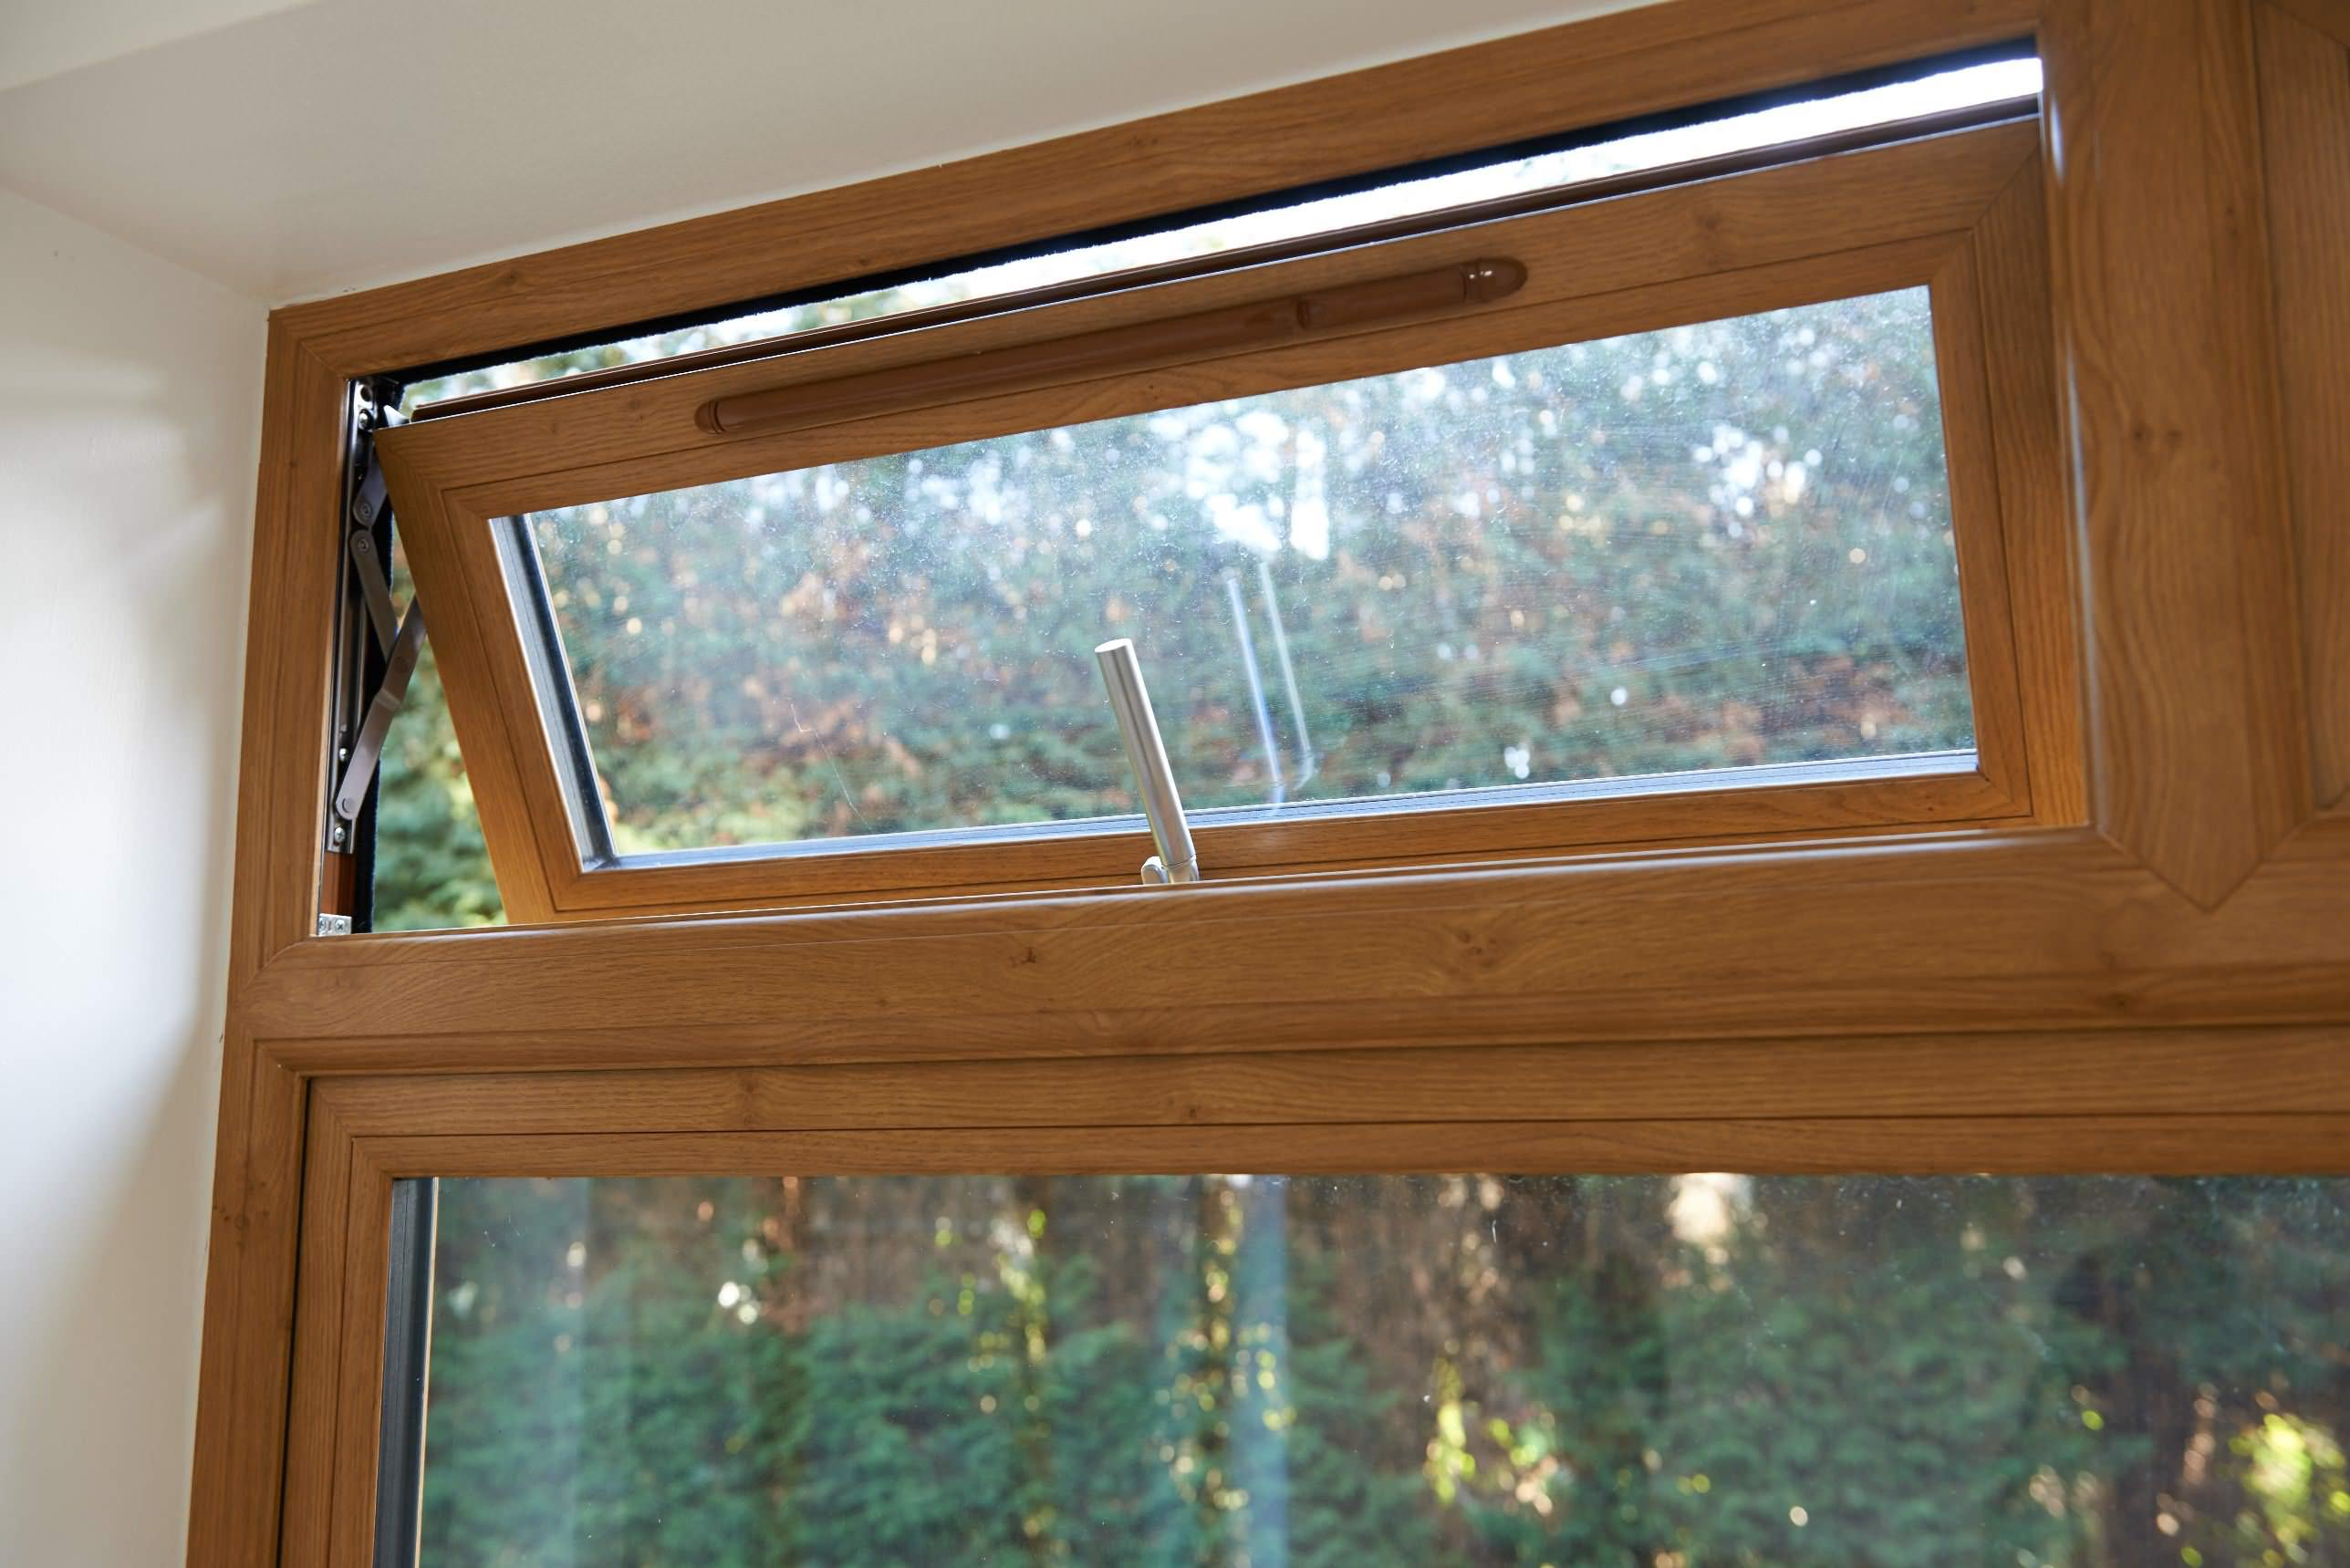 double glazing on windows helps improve the performance of your home